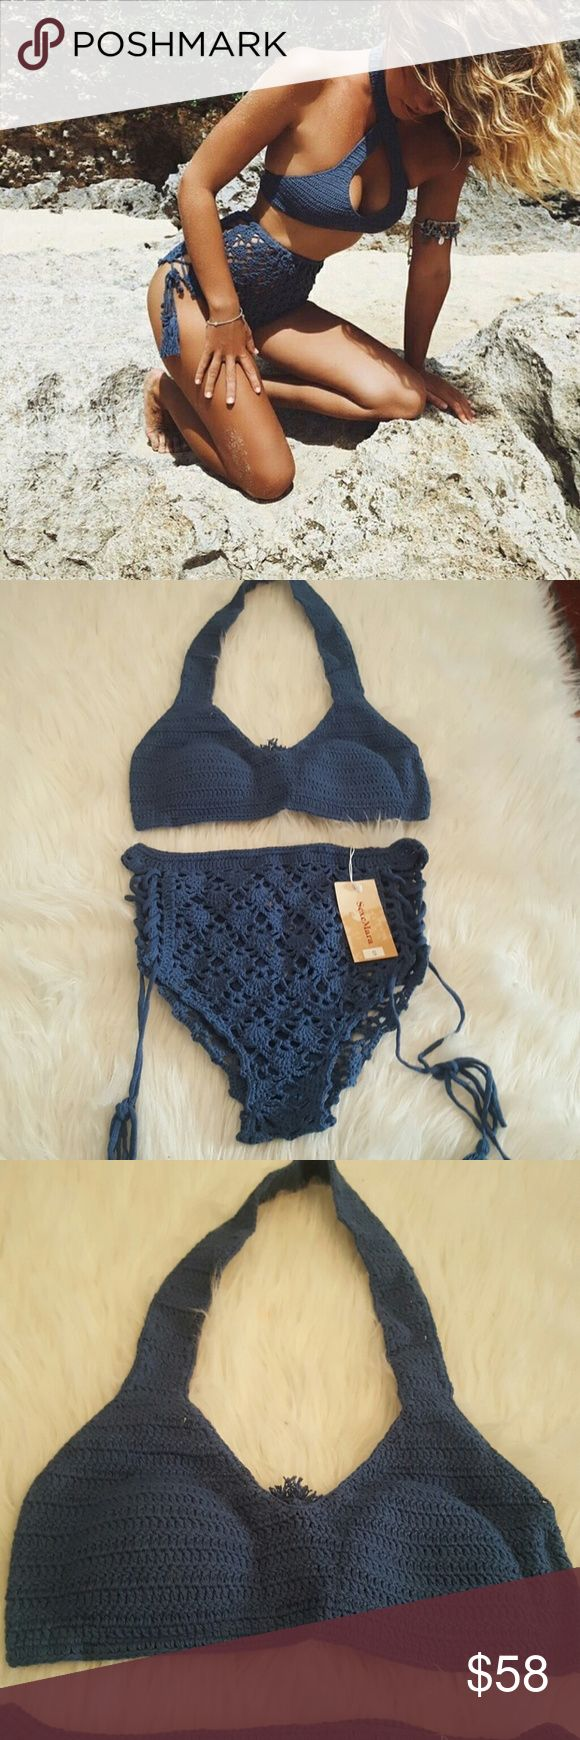 New Blue Crochet High-Waisted Bikini Brand New! Bottoms have tags, no tags for top but it is New! Size small however both top and bottoms are adjustable! Top is padded (removable) NOTE* As you can see the bottoms are crochet and not fully covered. Meaning there are holes everywhereeeee! But rest assured that wearing blue or black panties or swimsuit bottoms underneath works perfectly and this bikini is super unique and cute!  Offers welcome! Swim Bikinis